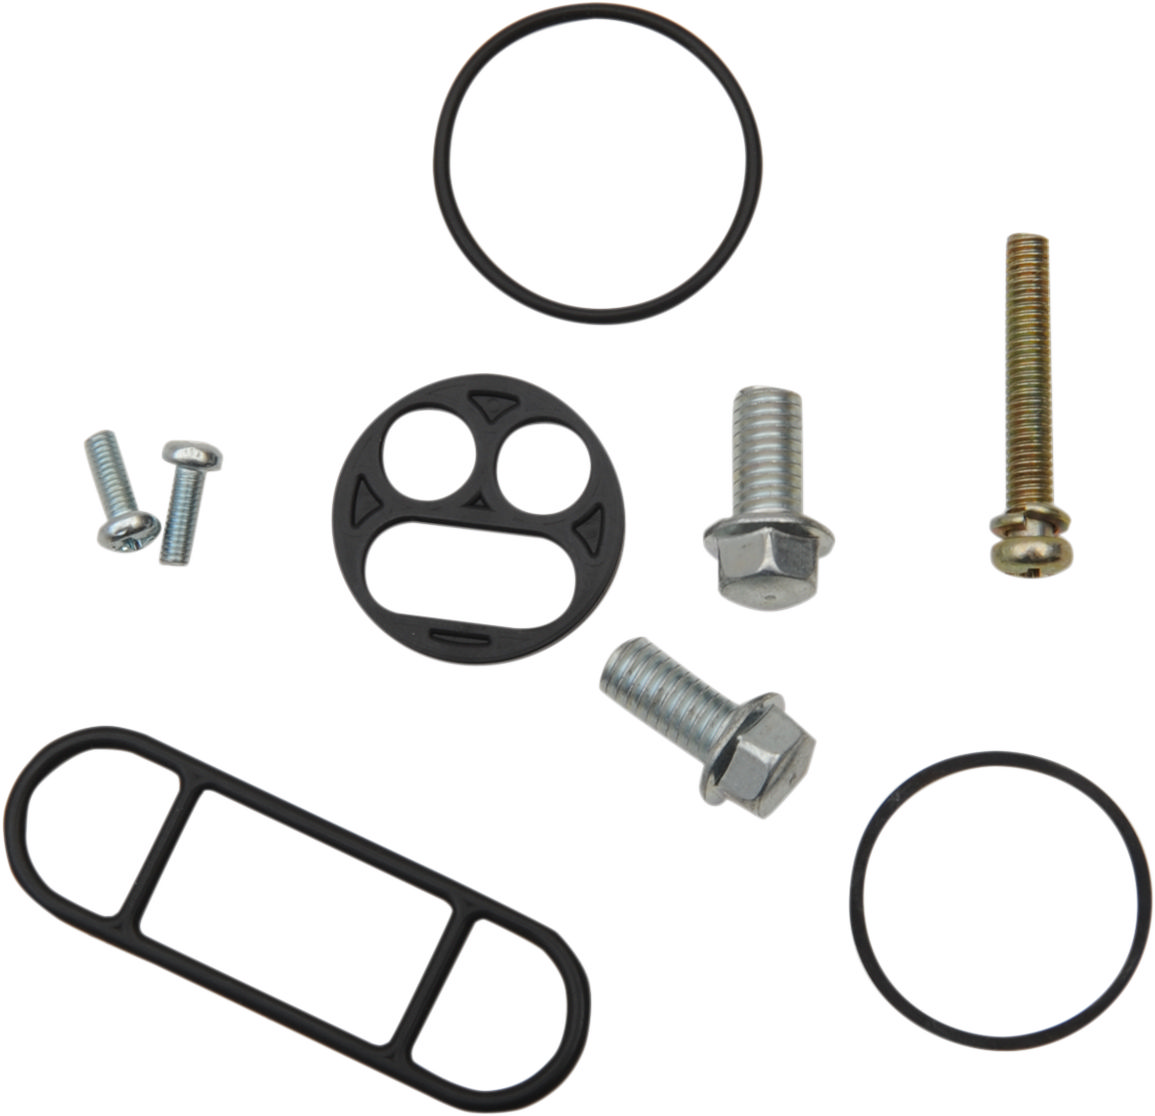 Moose Fuel Tap Repair Kit for Kawasaki KVF400A Prairie 4x4